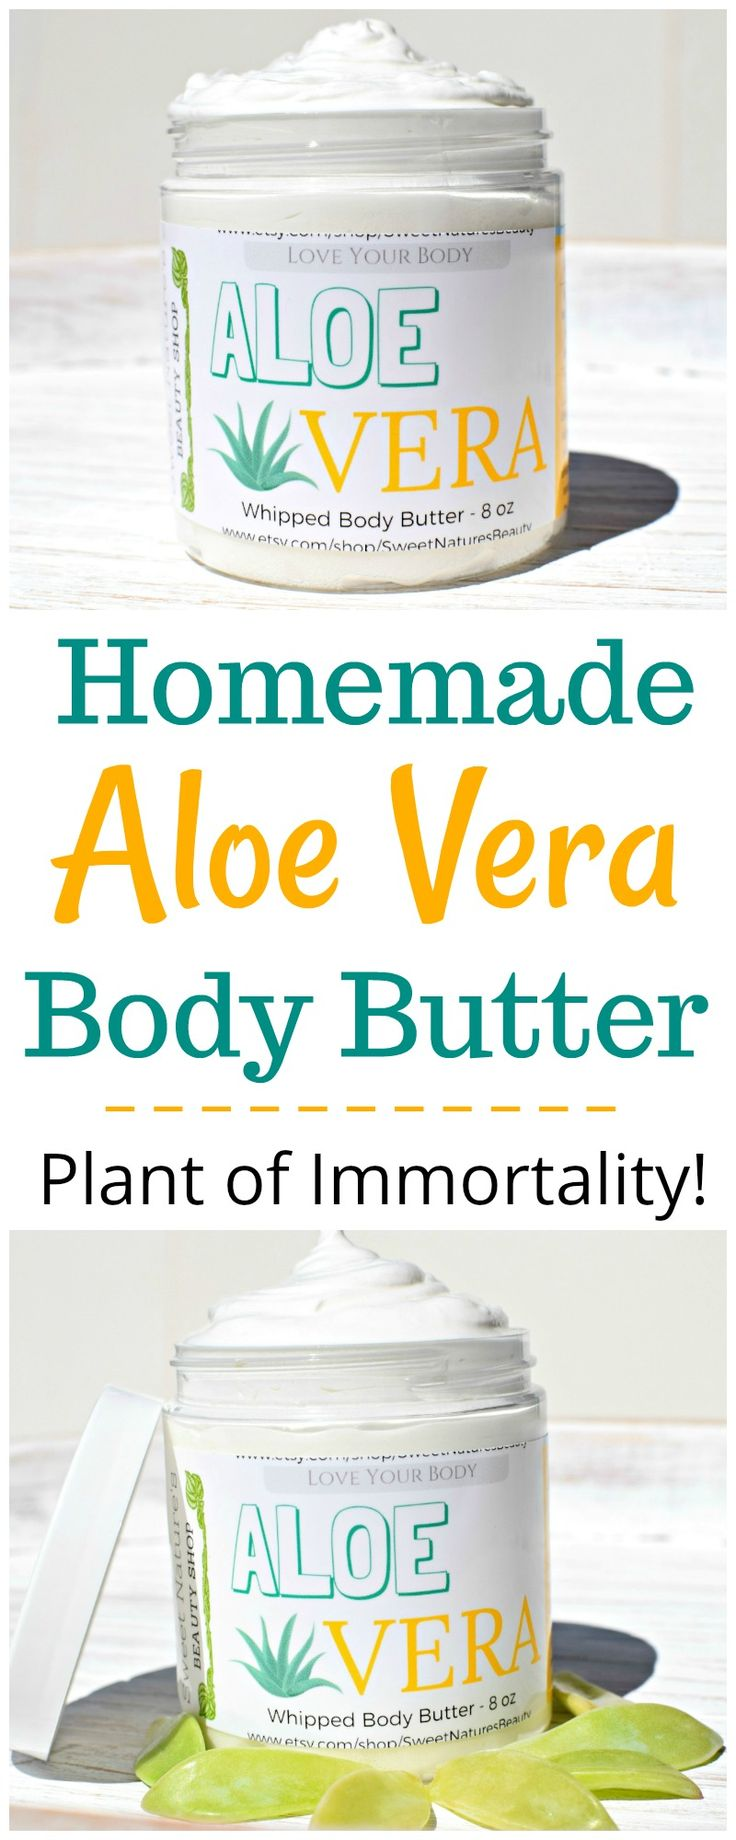 This homemade Aloe Vera body butter is great for dry skin, sunburns, and rashes. Made with shea butter, coconut oil, & essential oils for all natural beauty. Homemade body lotion for dry skin.